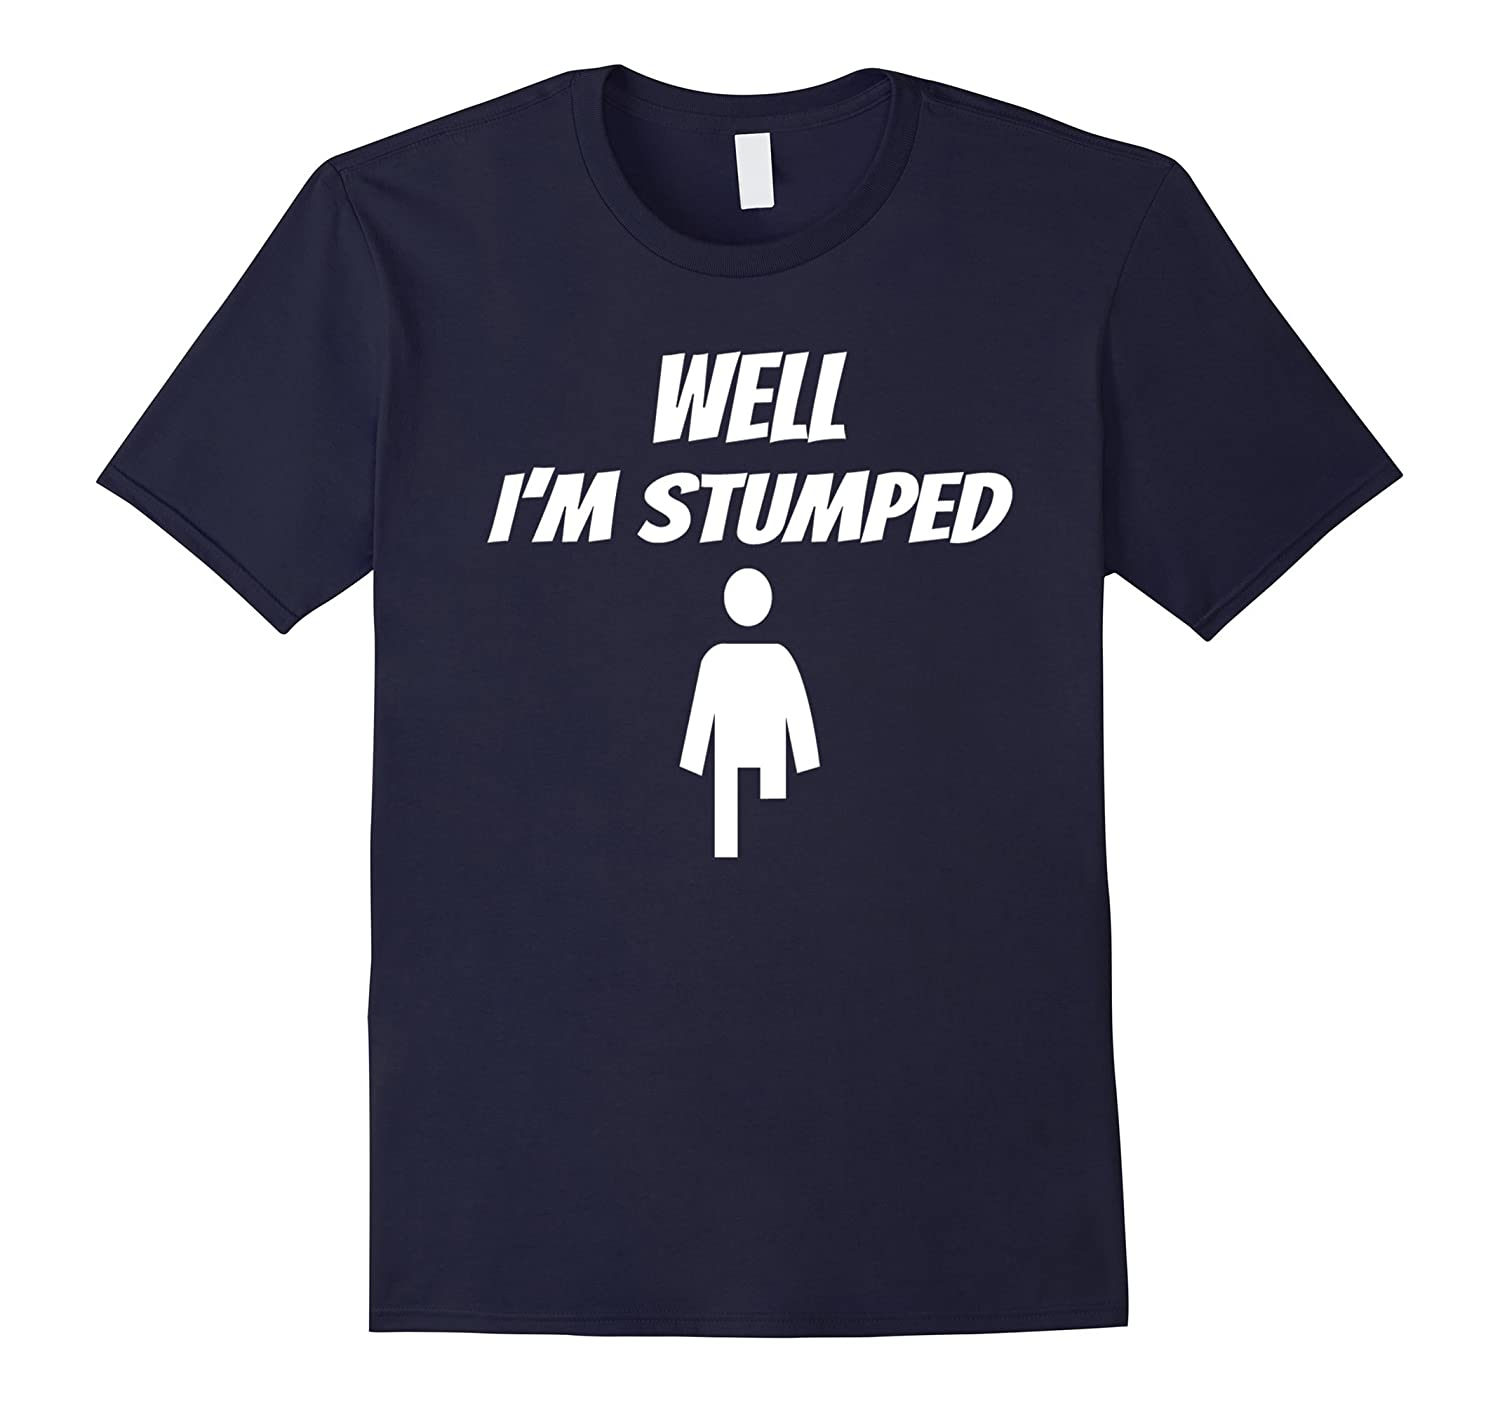 AmpuTEES Well I'm Stumped Cotton T-shirt-T-Shirt